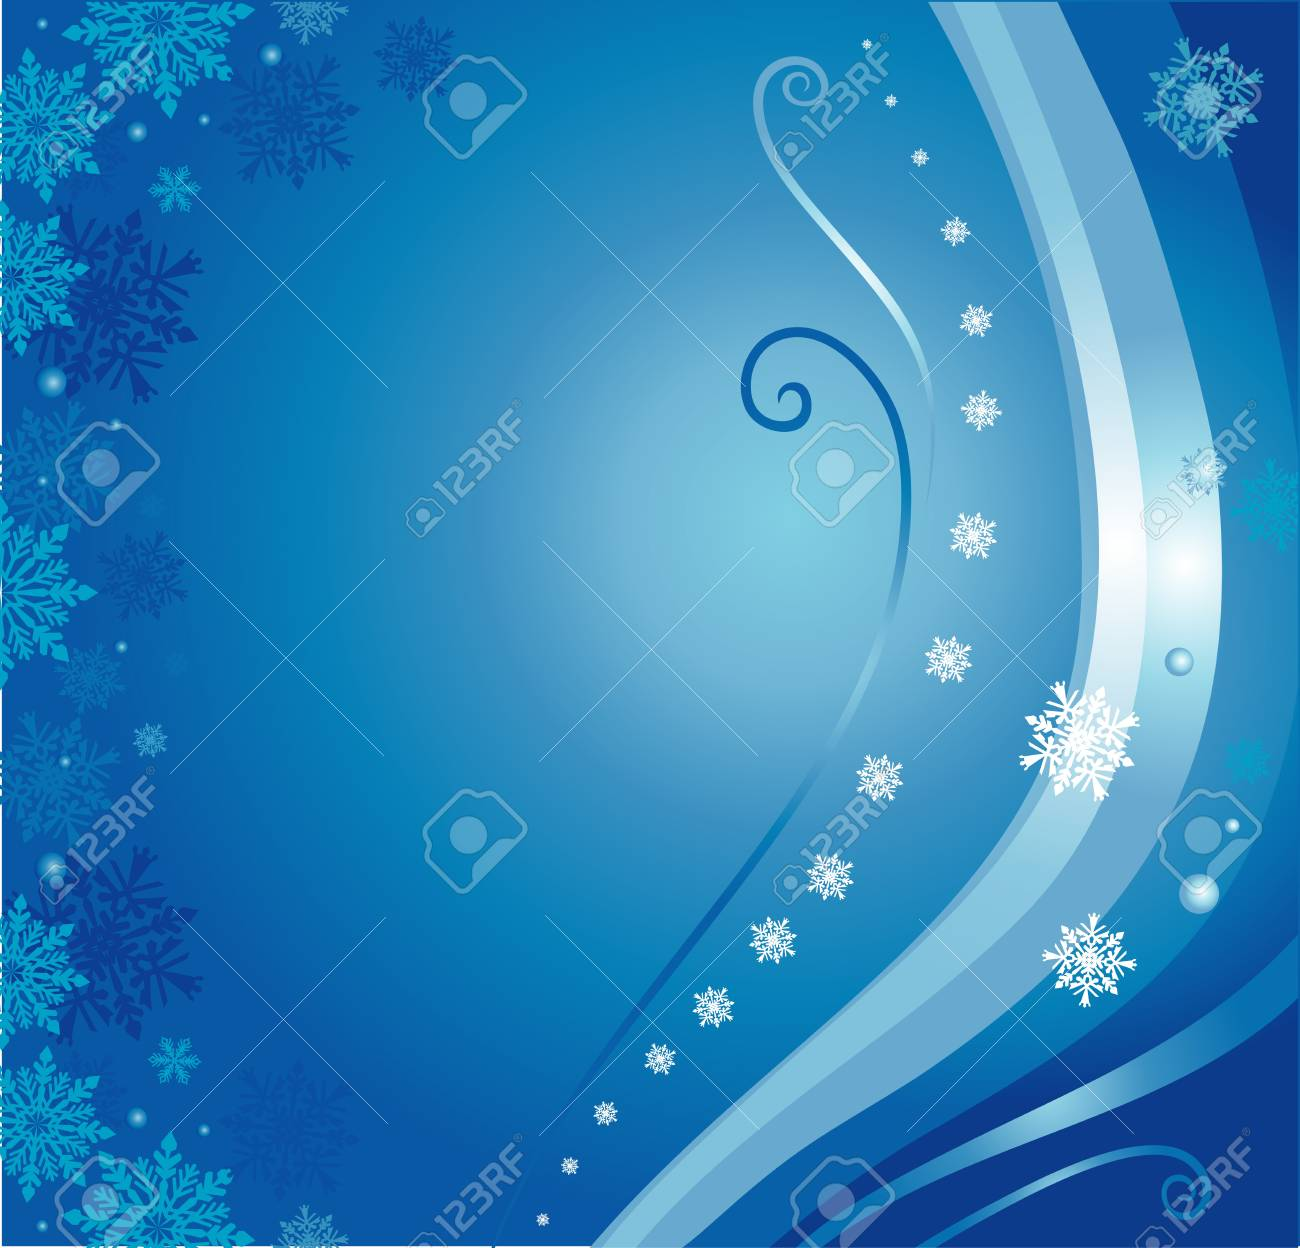 blue  christmas card background with snowflakes Stock Vector - 17524752